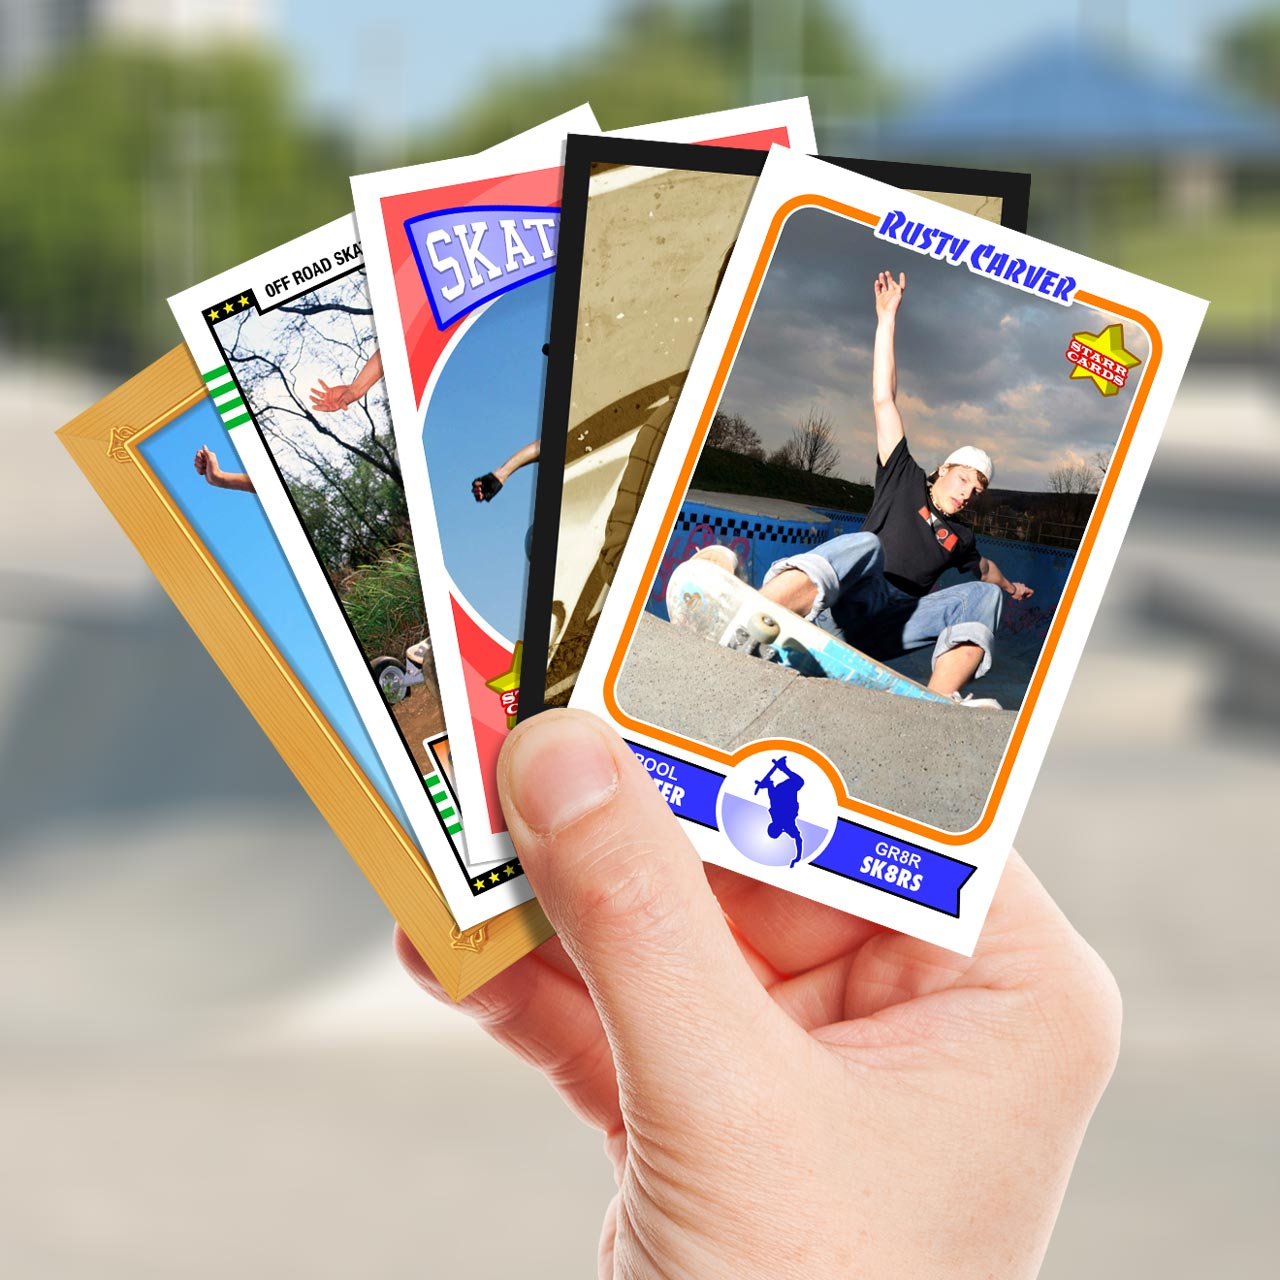 Make your own skateboarding card with Starr Cards.